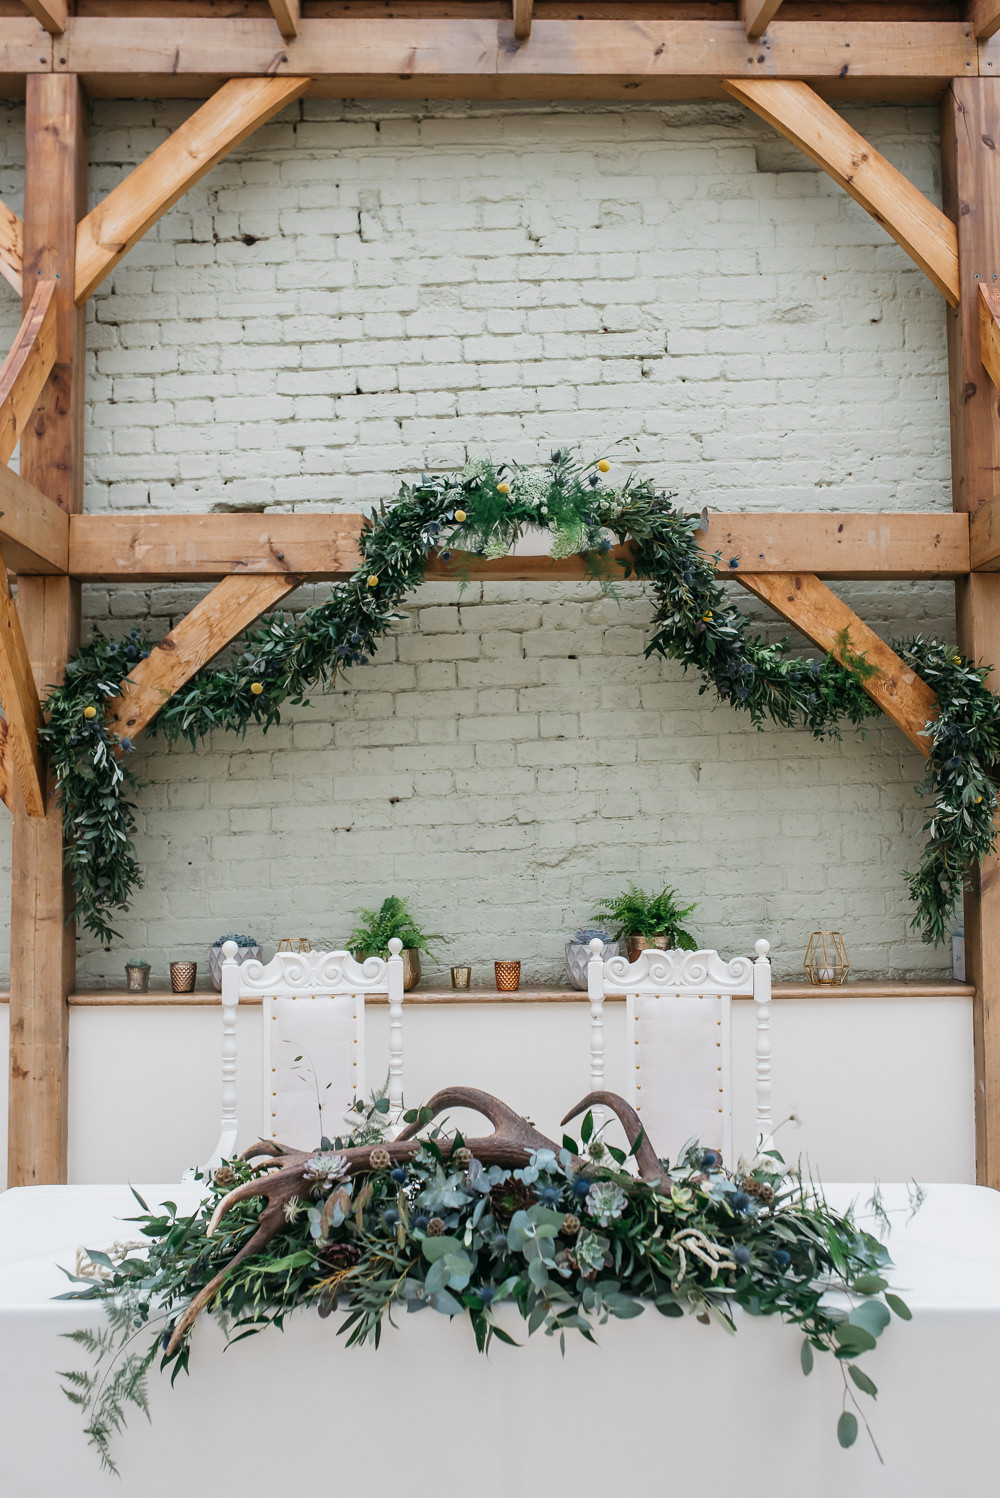 Top Table Greenery Foliage Wreath Antlers Thrones Quirky Rustic Charm Wedding Justin Bailey Photography